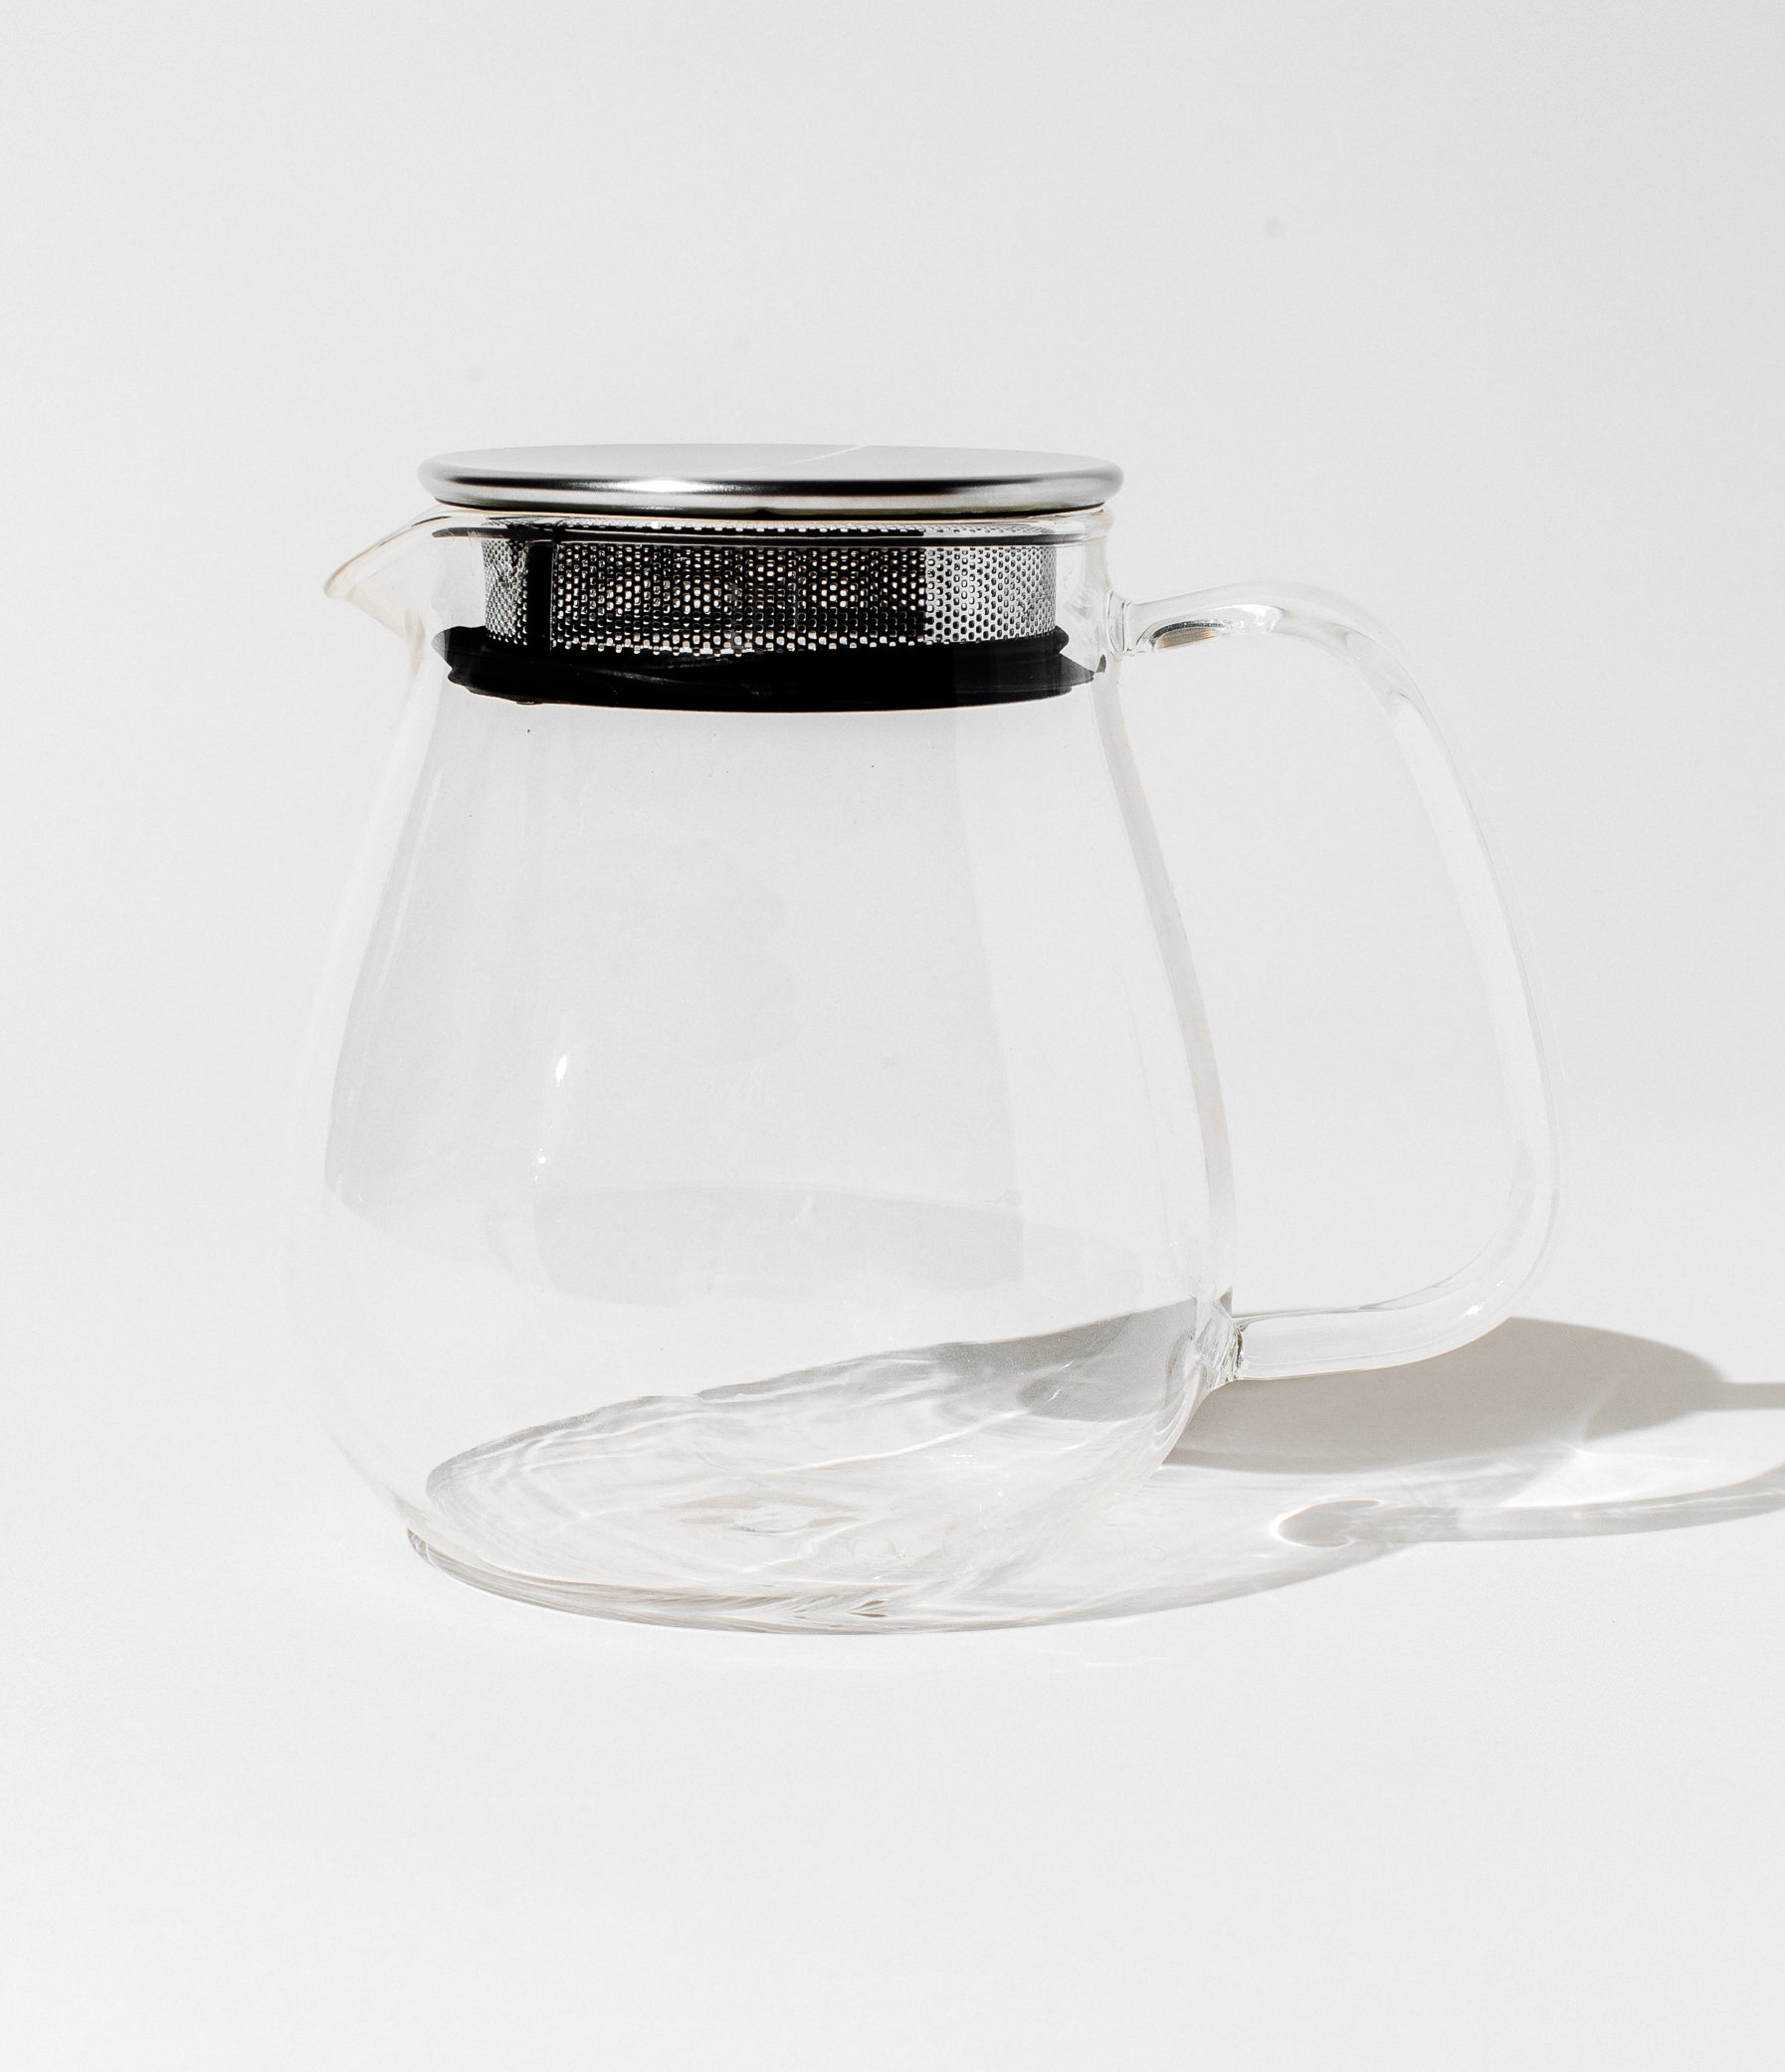 Kinto Glass Teapot Teaware 24 oz by Art of Tea